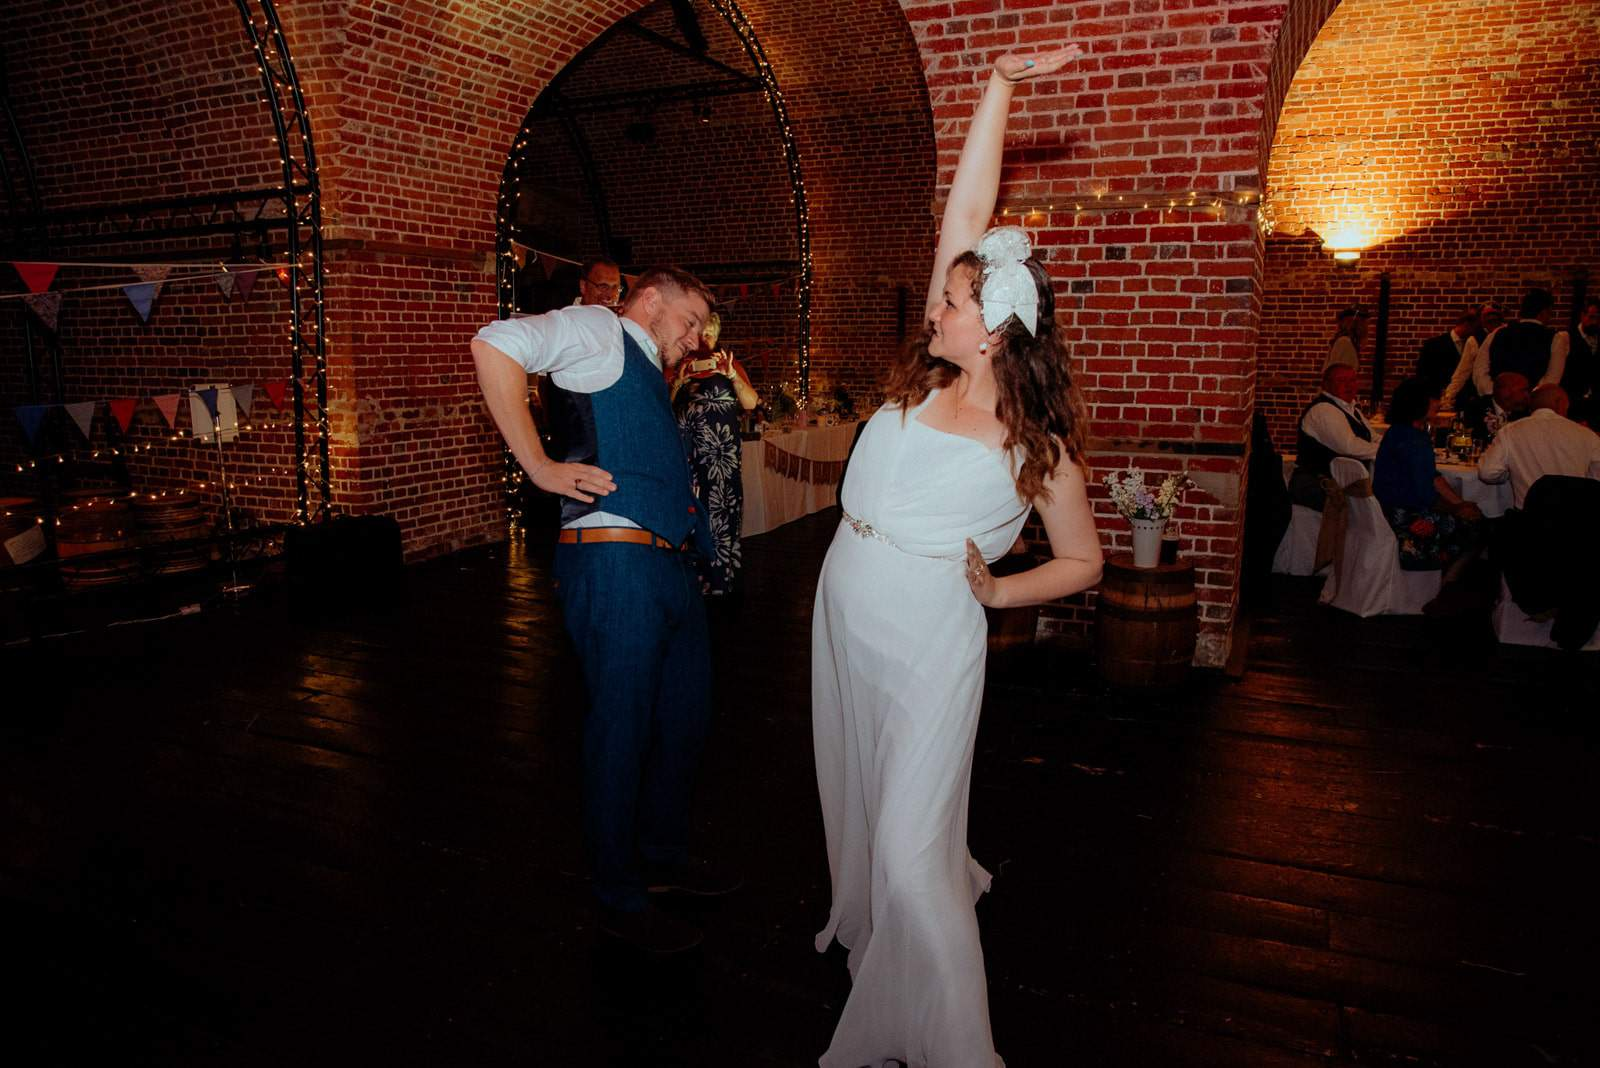 A bride and groom celebrate their nuptials with their first dance